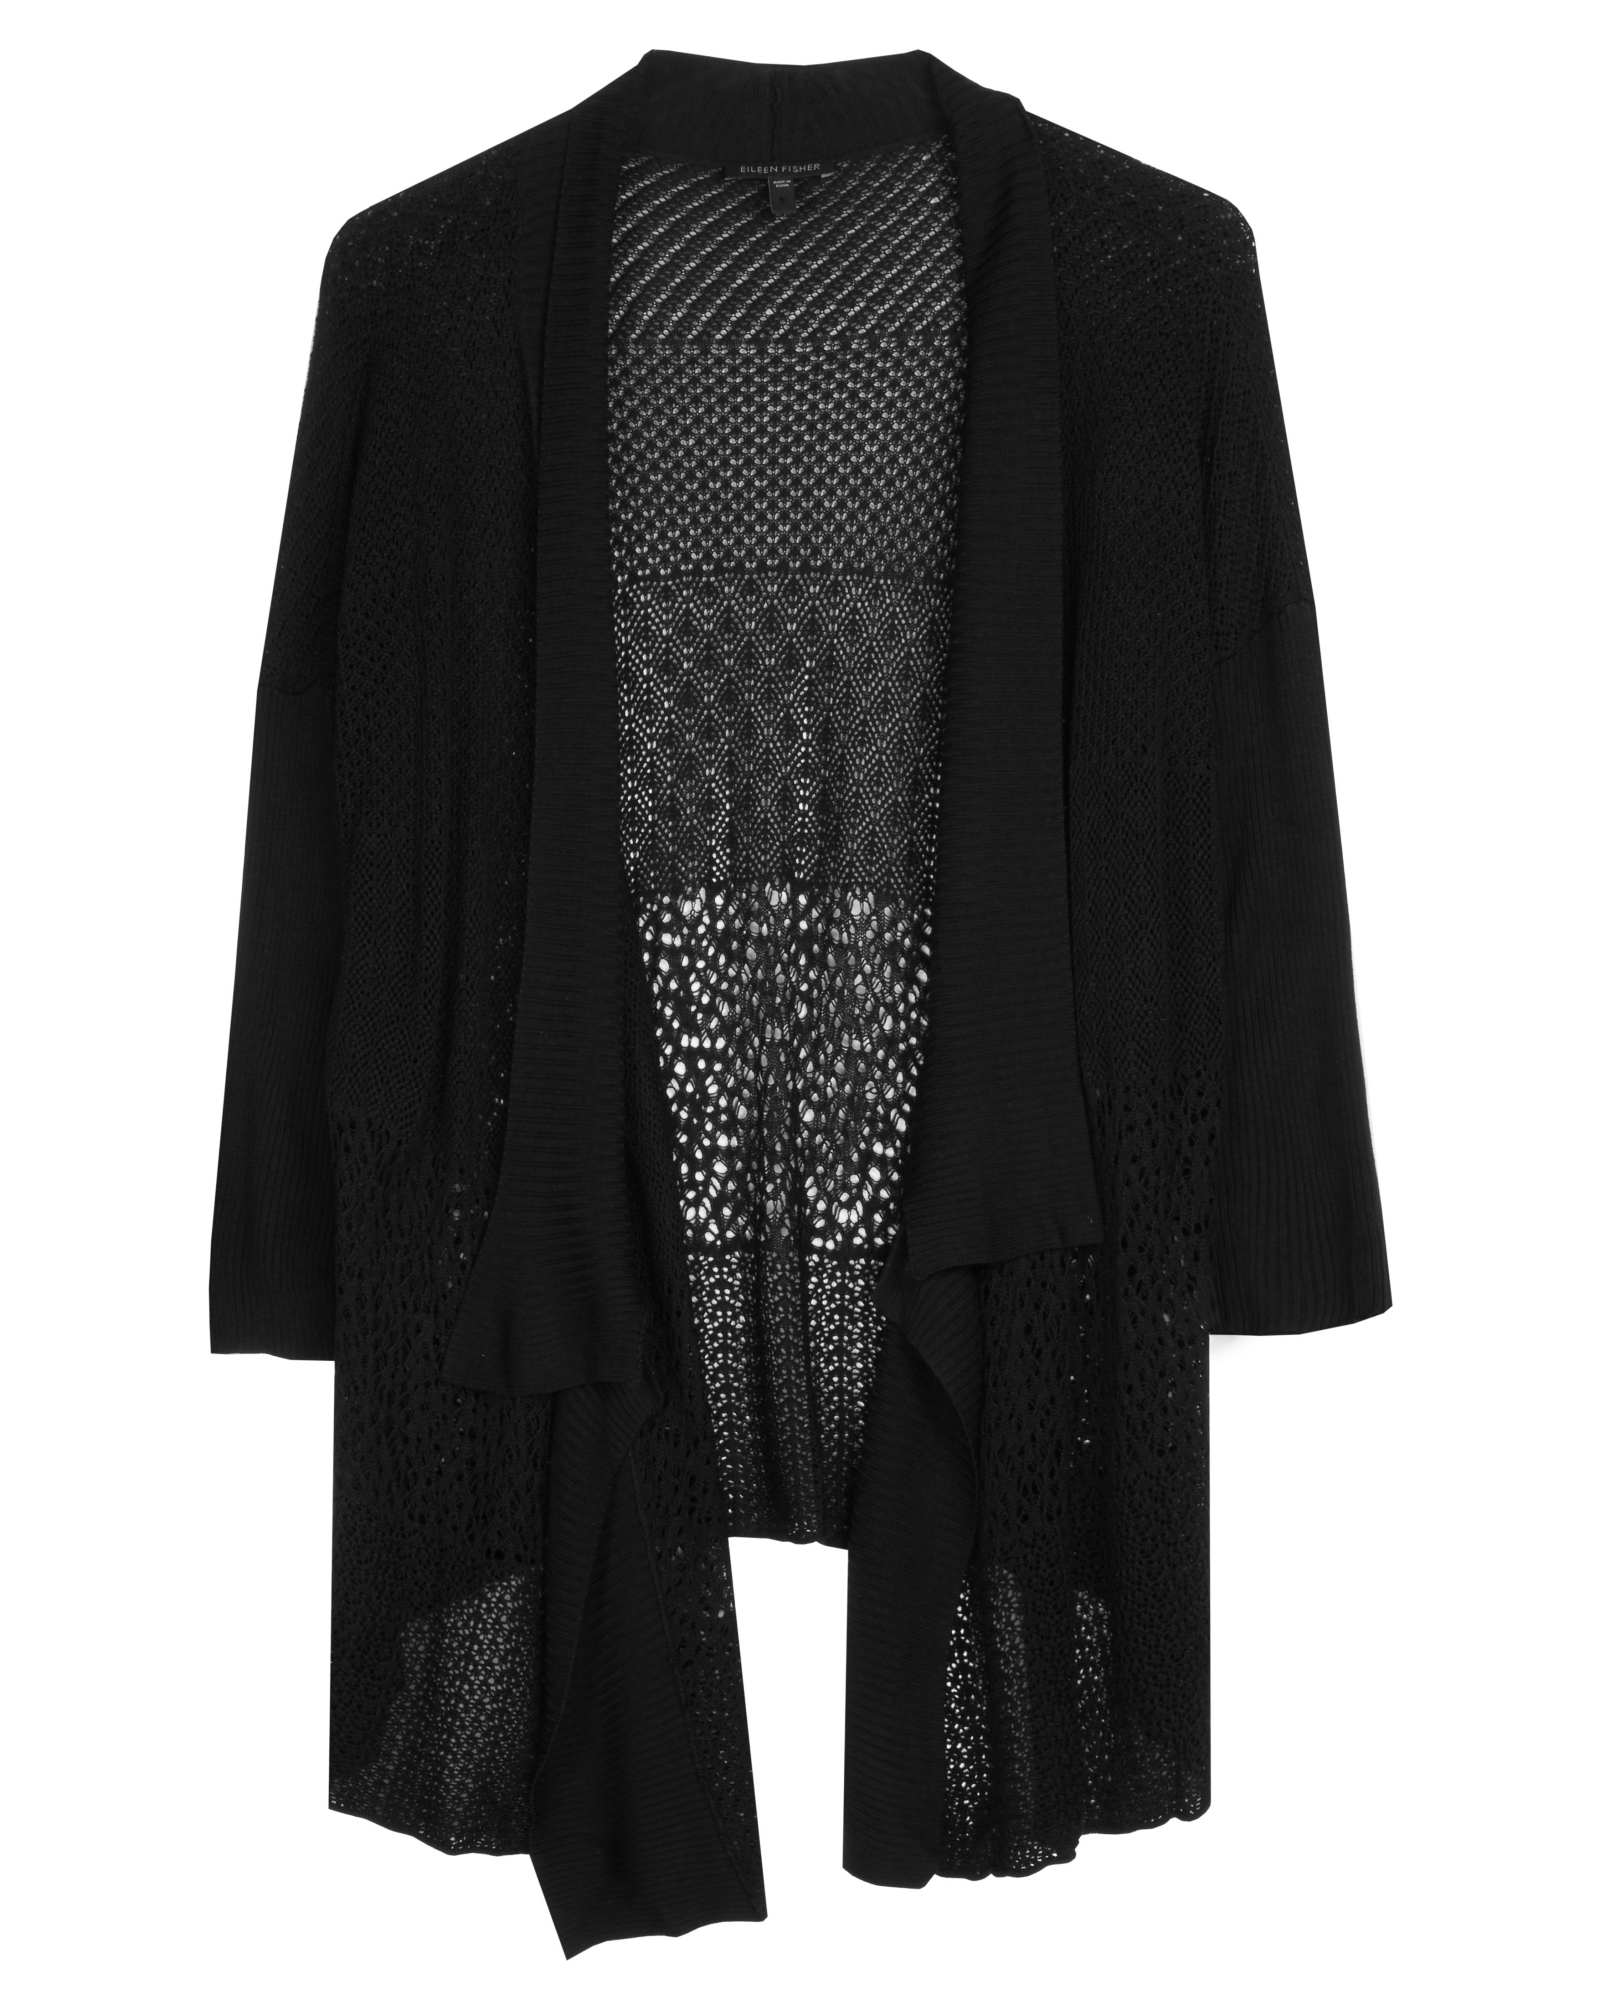 Silk Sheen Lace Cardigan